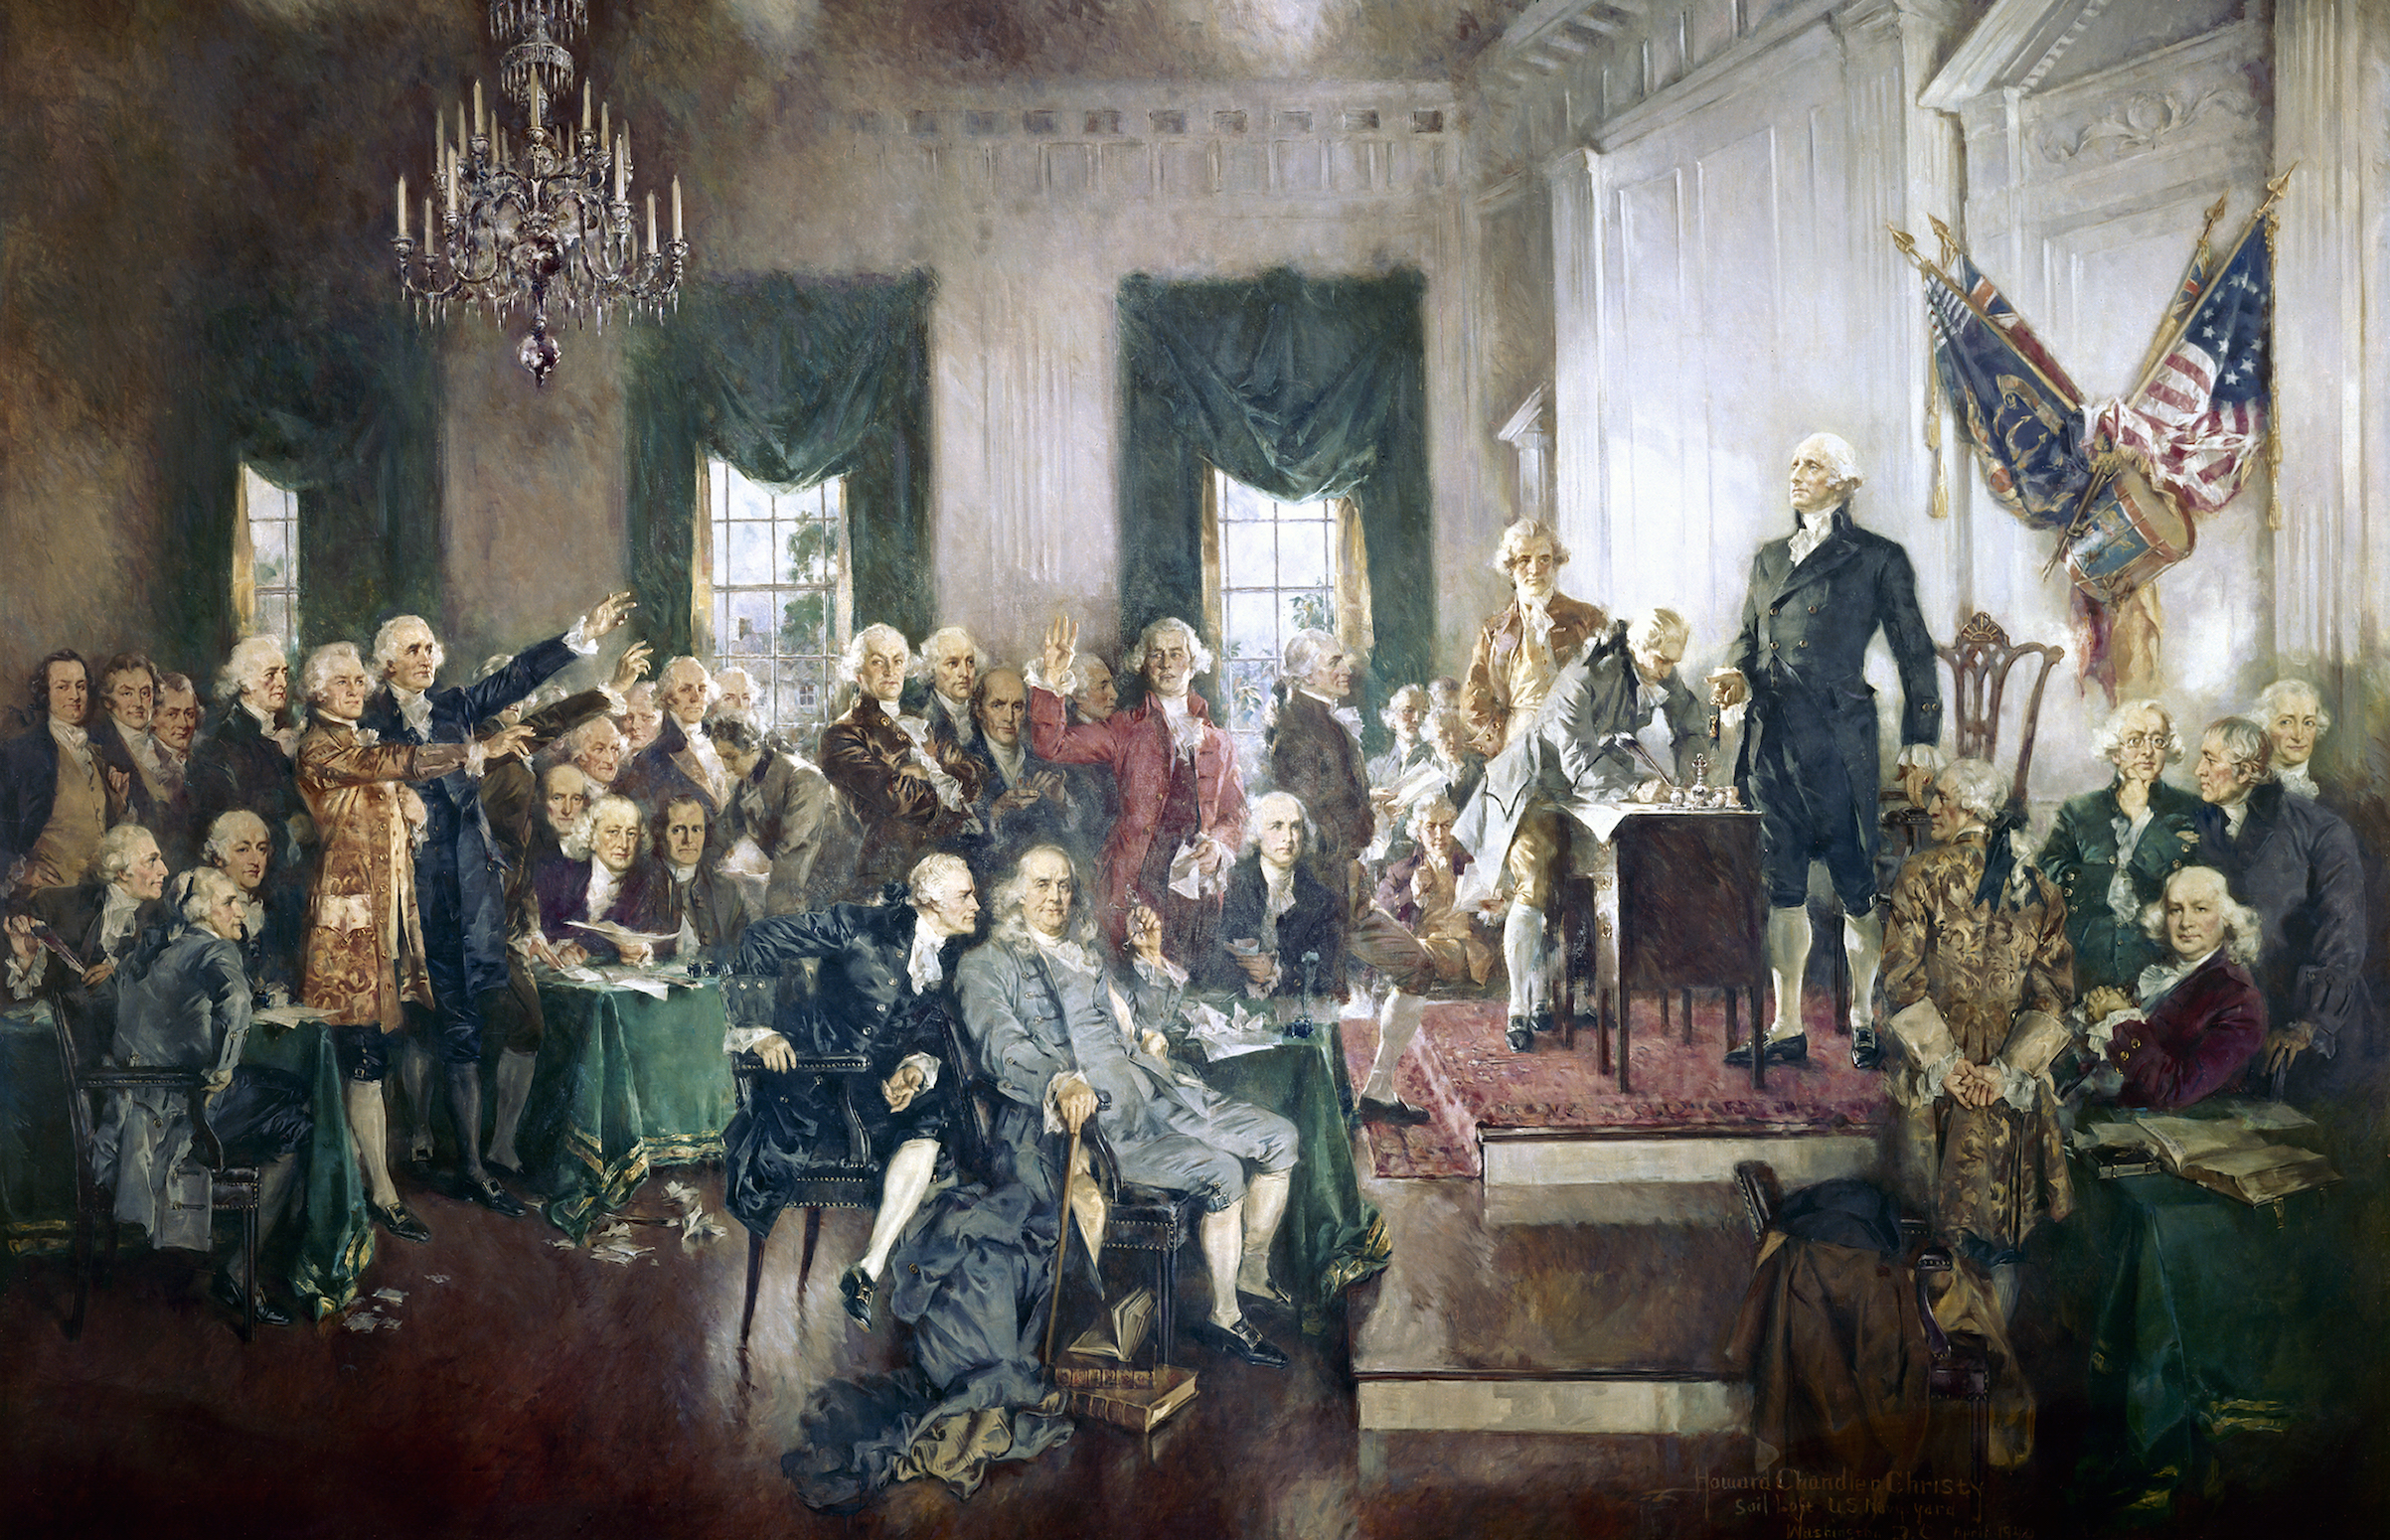 The Signing of the Constitution of the United States, with George Washington, Benjamin Franklin, and others at the Constitutional Convention of 1787; oil painting on canvas by Howard Chandler Christy, 1940. The painting is 20 by 30 feet and hangs in the United States Capitol building. (Photo by GraphicaArtis/Getty Images)